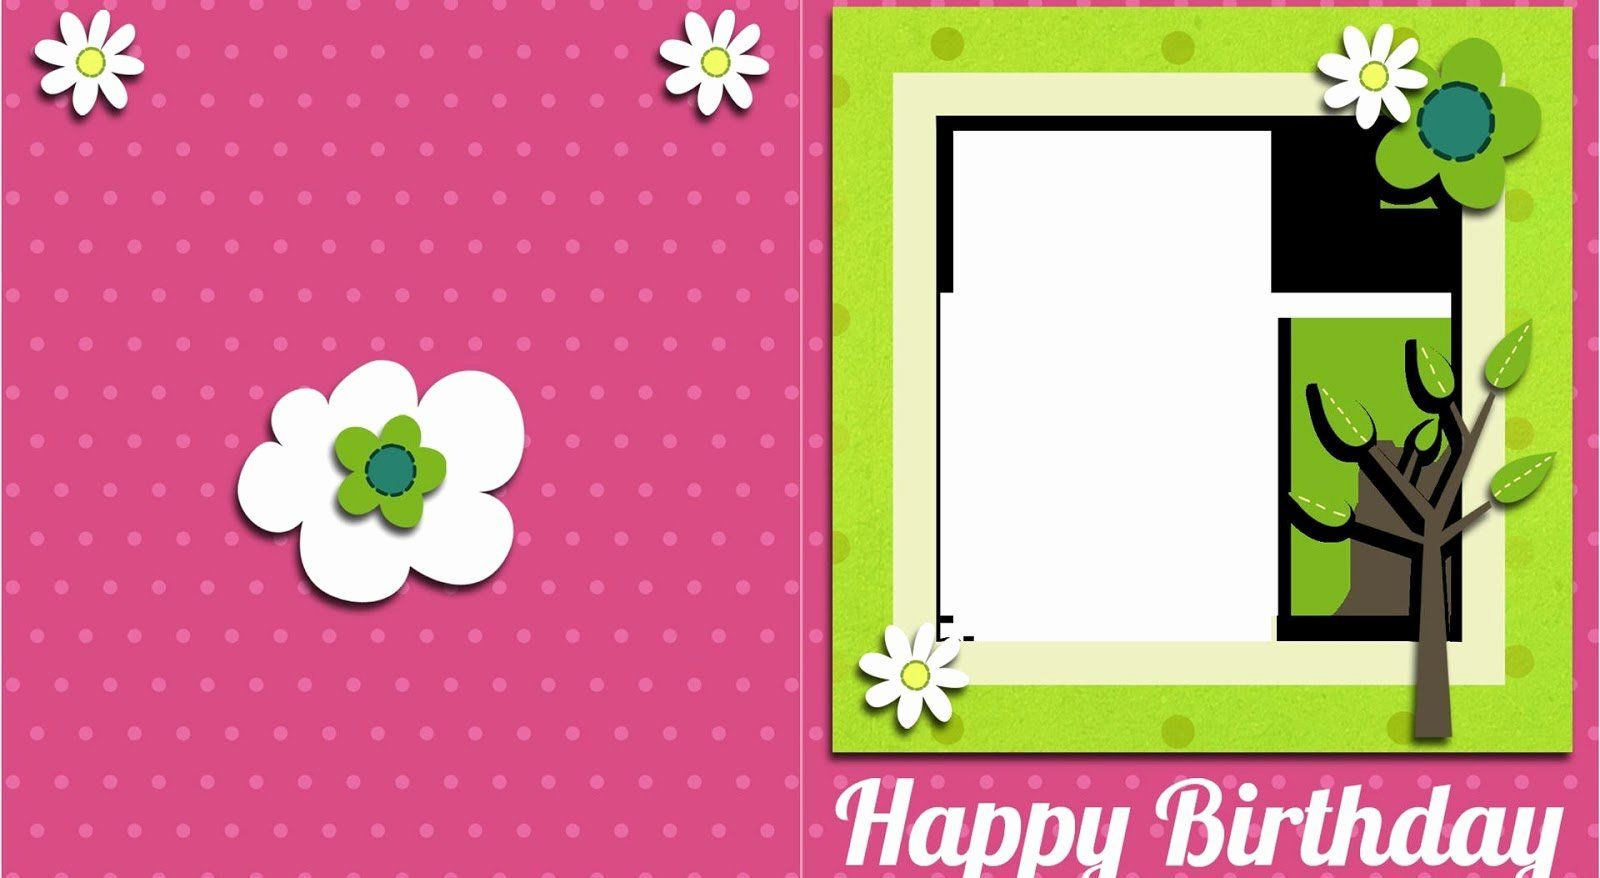 Happy Birthday Card Template Best Of Wish You A Very Happy Birthday Words Texted Birthday Card Template Free Free Birthday Card Happy Birthday Cards Printable